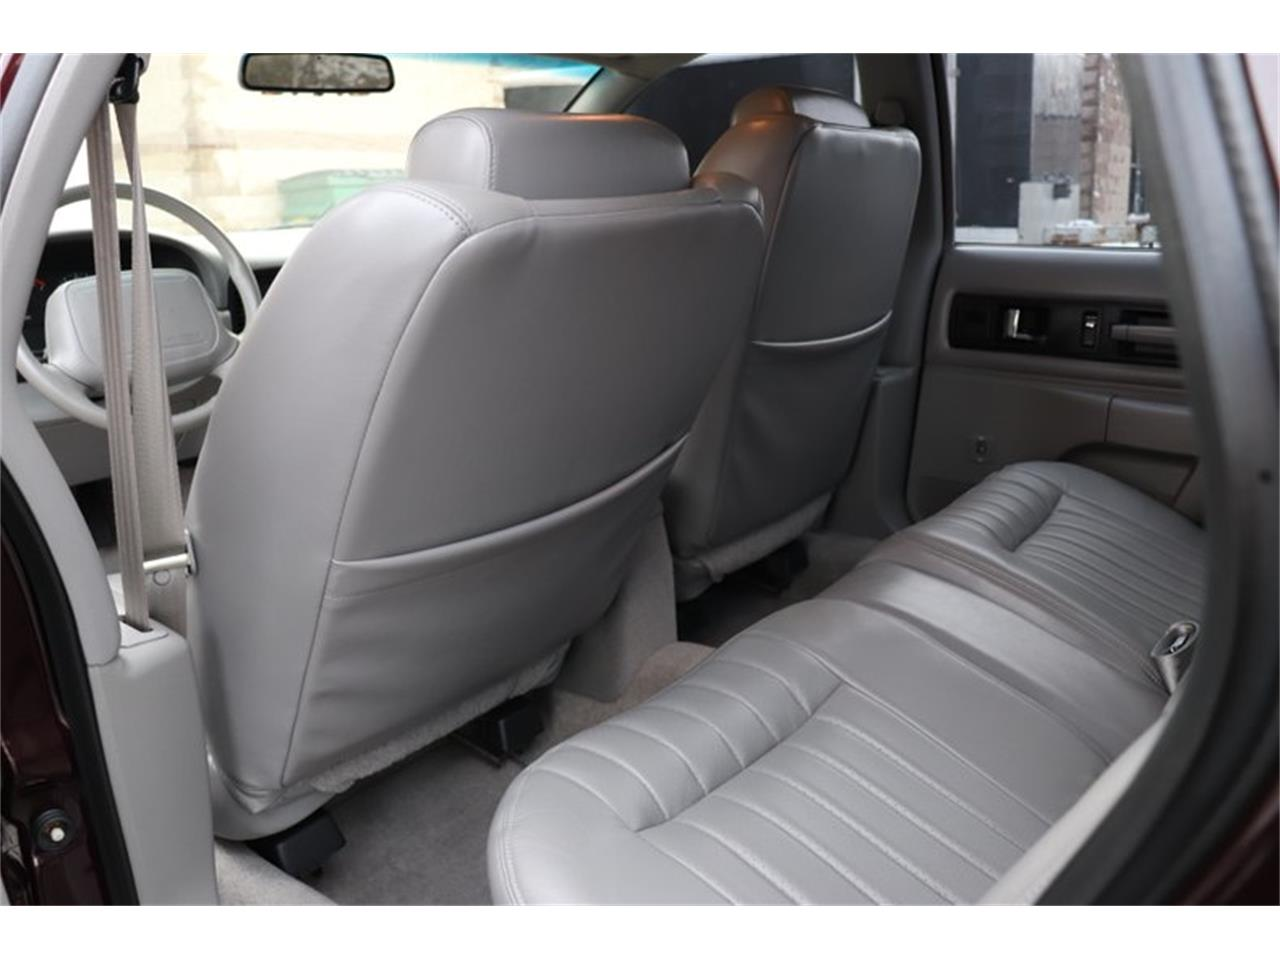 Large Picture of '96 Impala - $28,900.00 - P1PX